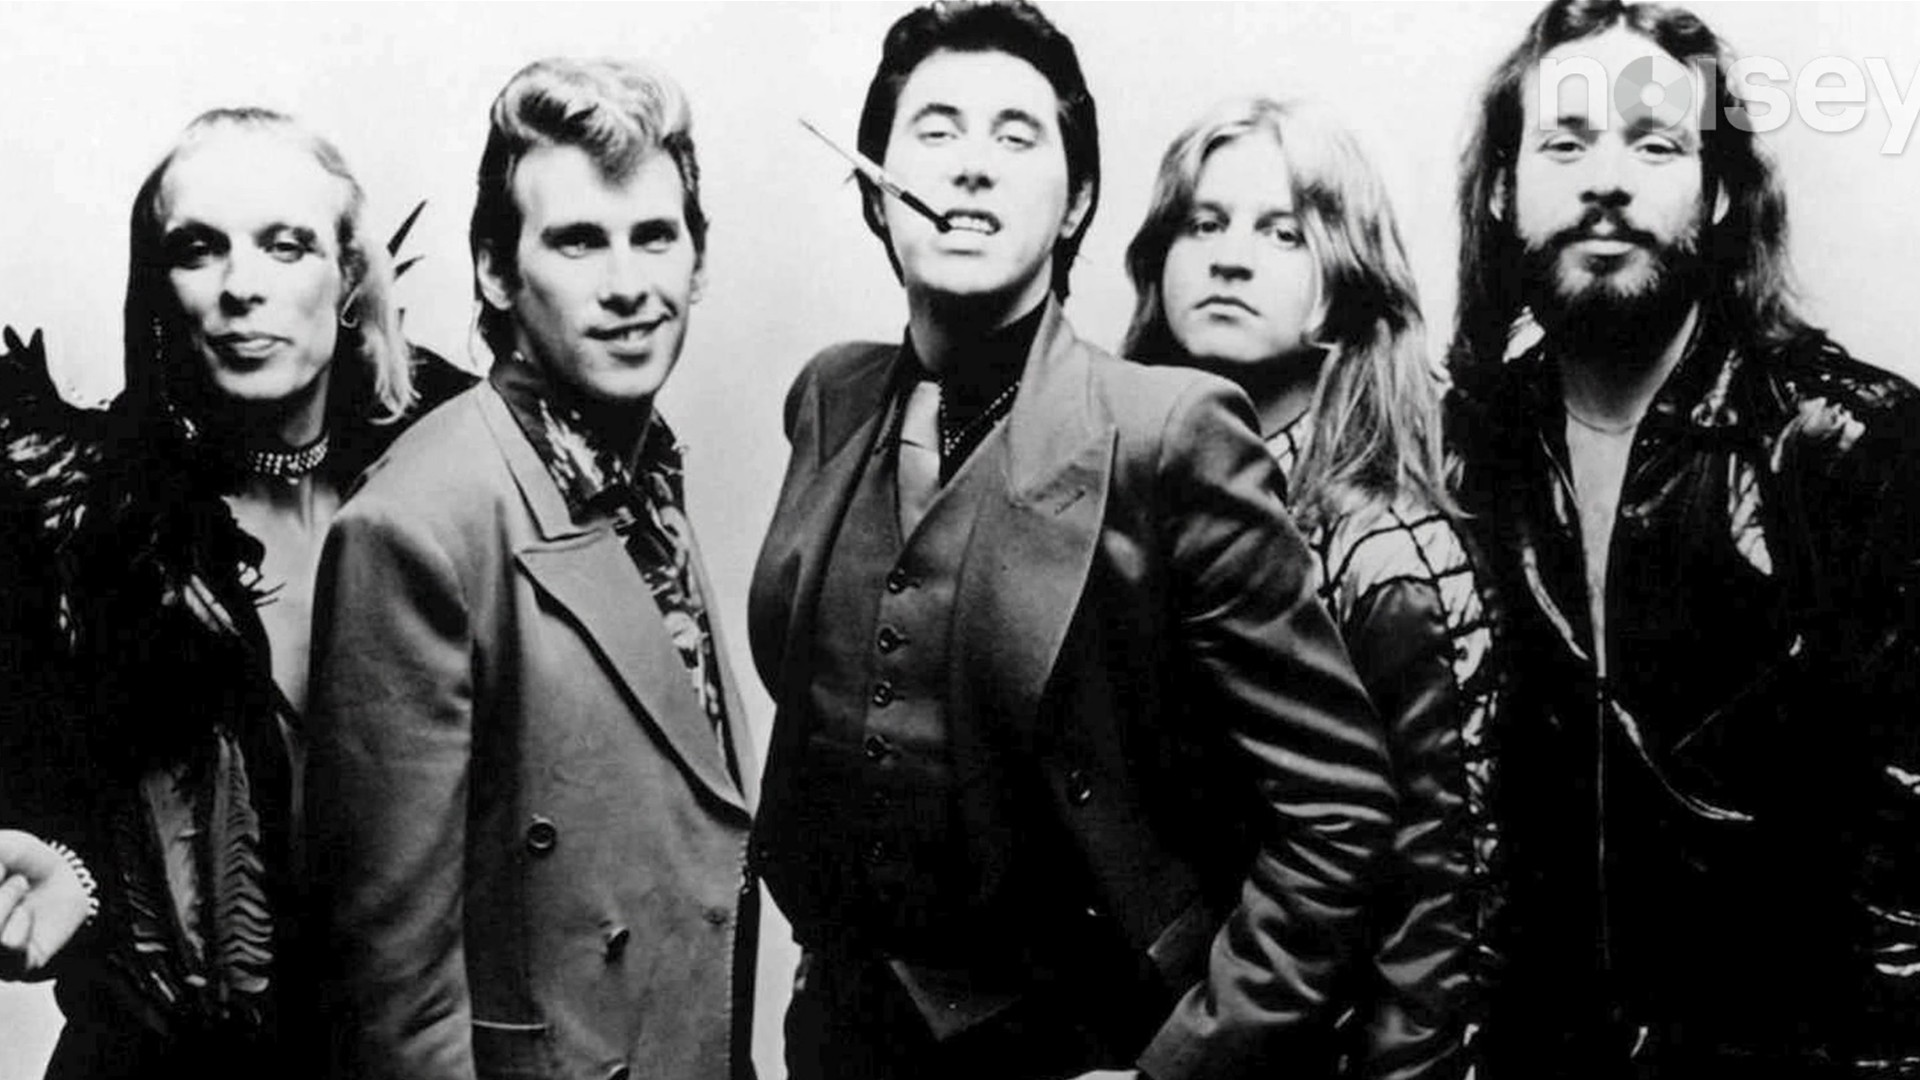 Bryan Ferry - Roxy Music Let's Stick Together - Love Is The Drug